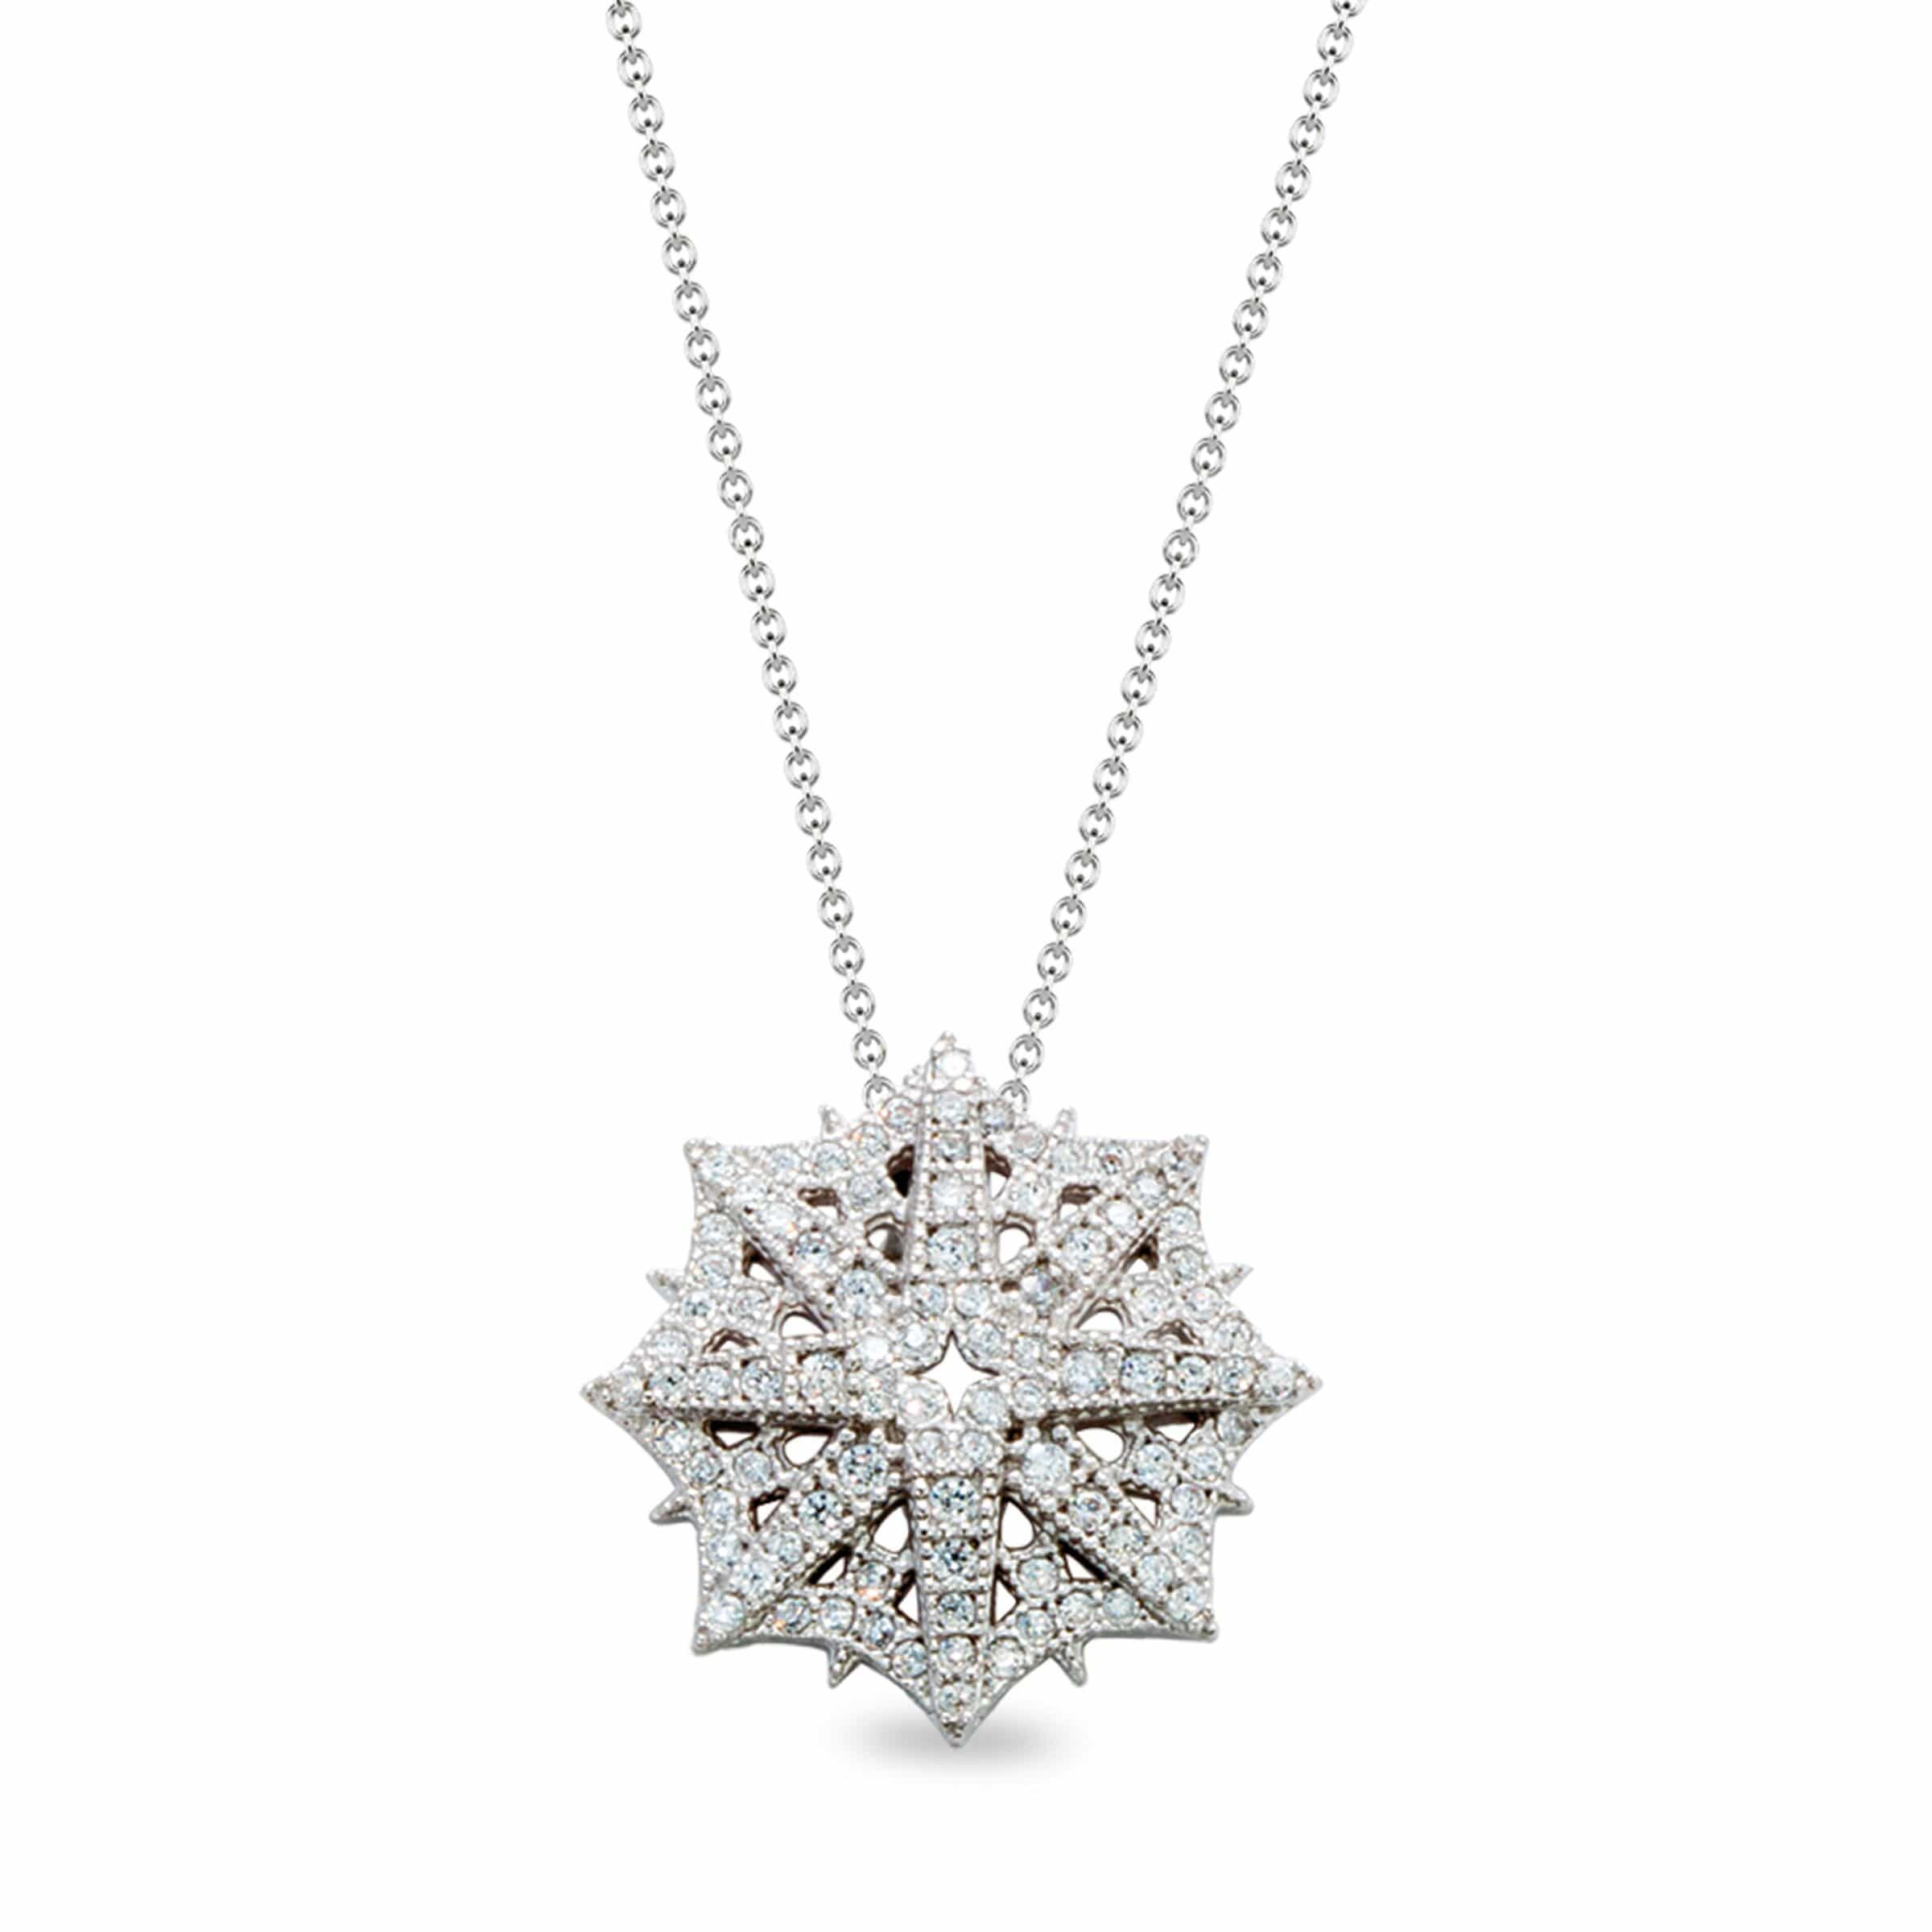 Platinum Finish Sterling Silver Micropave Star Shaped Snowflake Pendant  - BL2159N-D